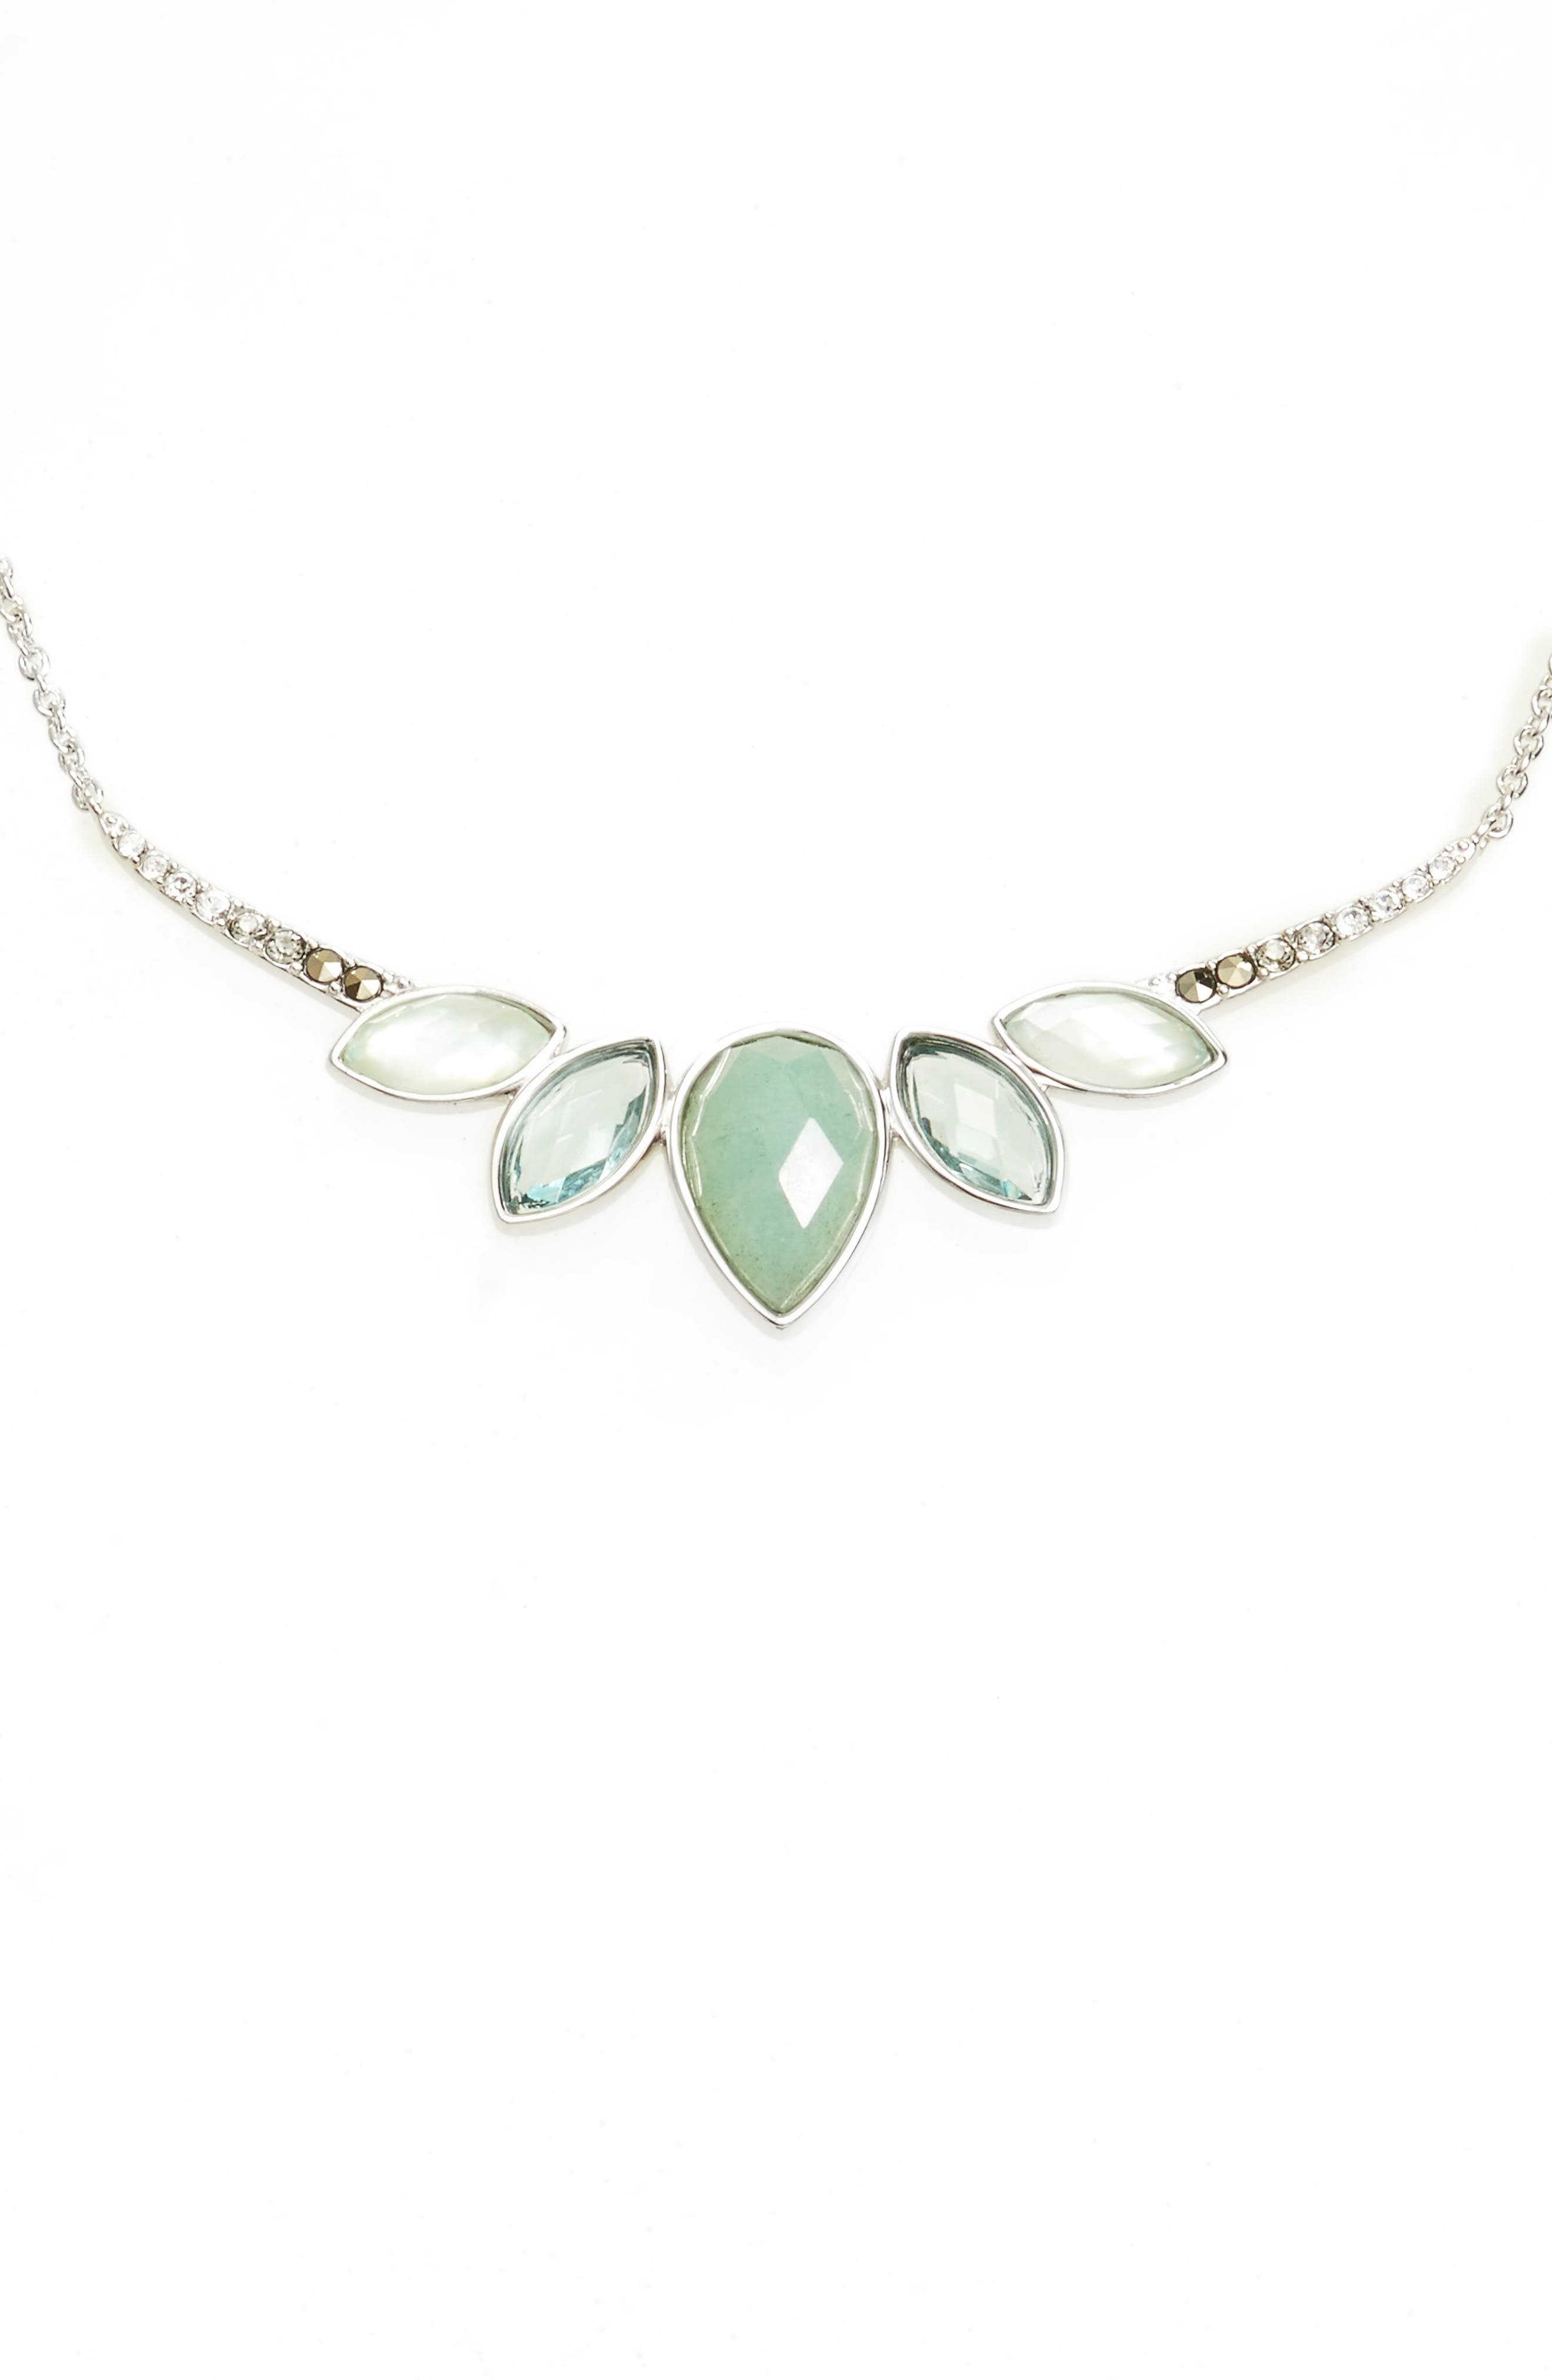 Lakeside Crystal Frontal Necklace,                             Main thumbnail 1, color,                             Green/ Black Diamond